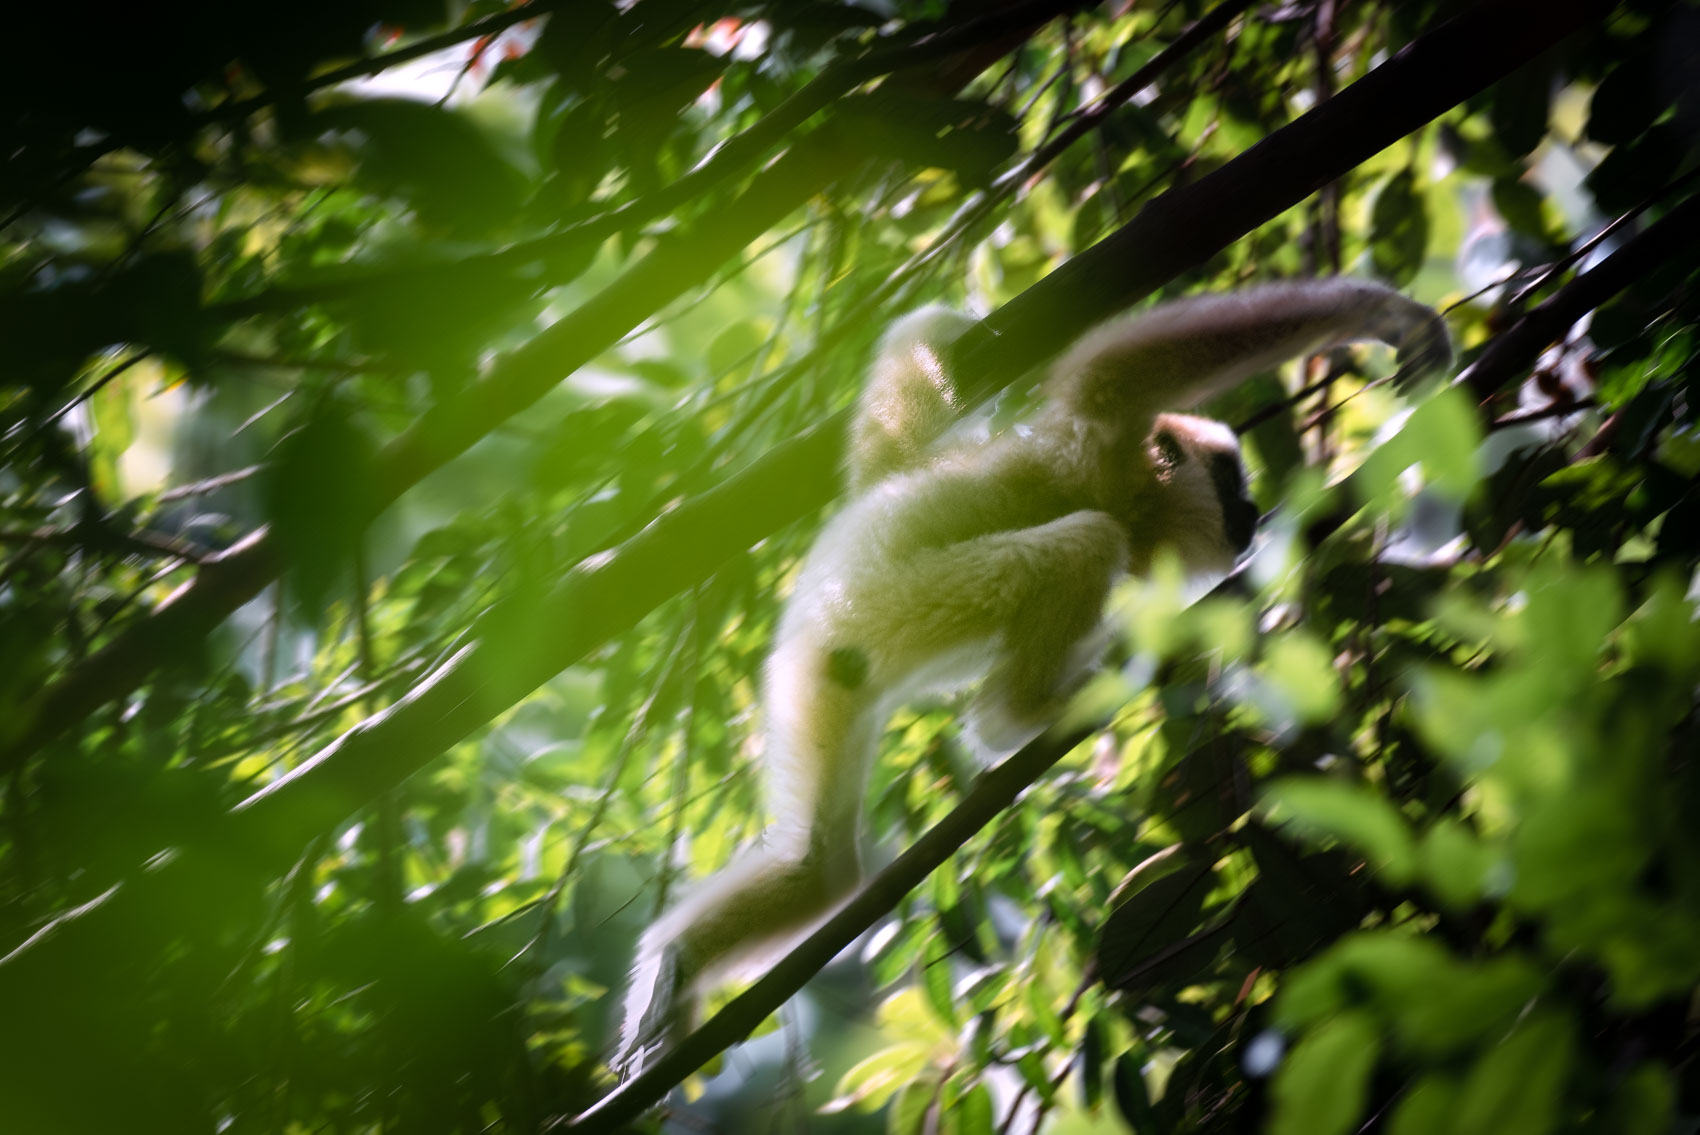 Lar gibbon baby climbing through forest canopy